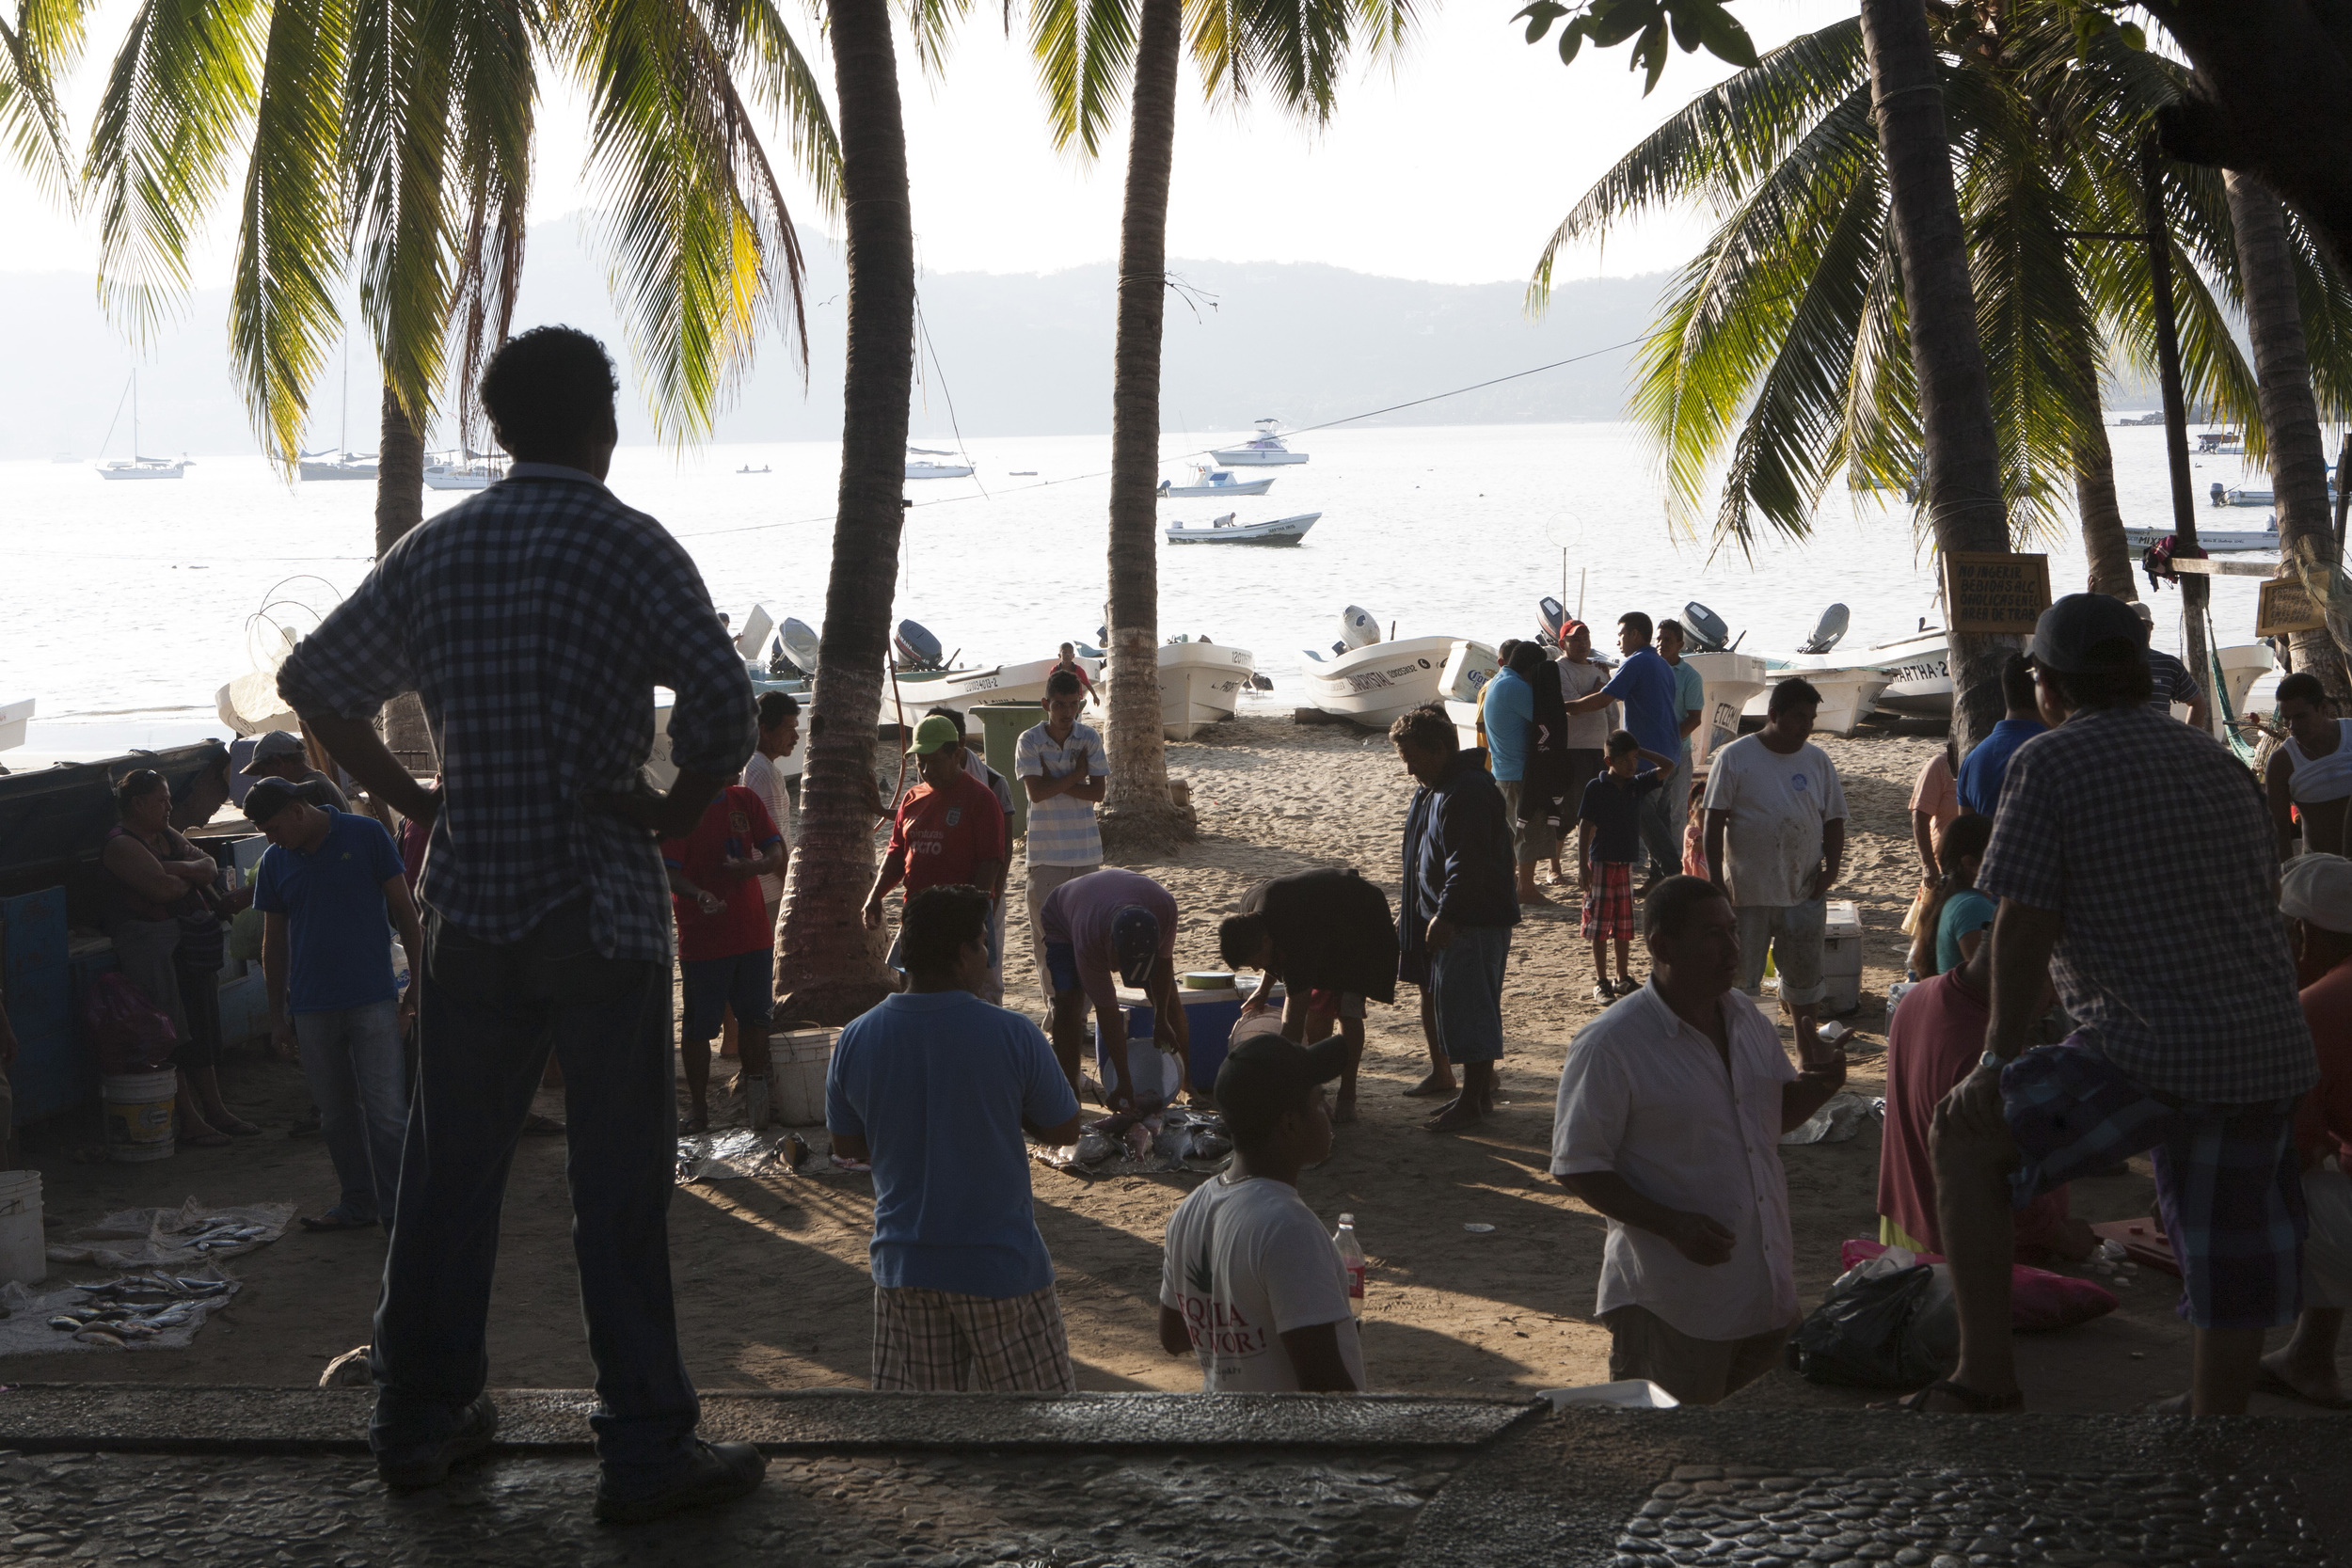 Visitors can enjoy the natural charms of the local fishing scene in the mornings at Playa Principal where the beach in Zihua turns into a lively market. ©Gail Fisher